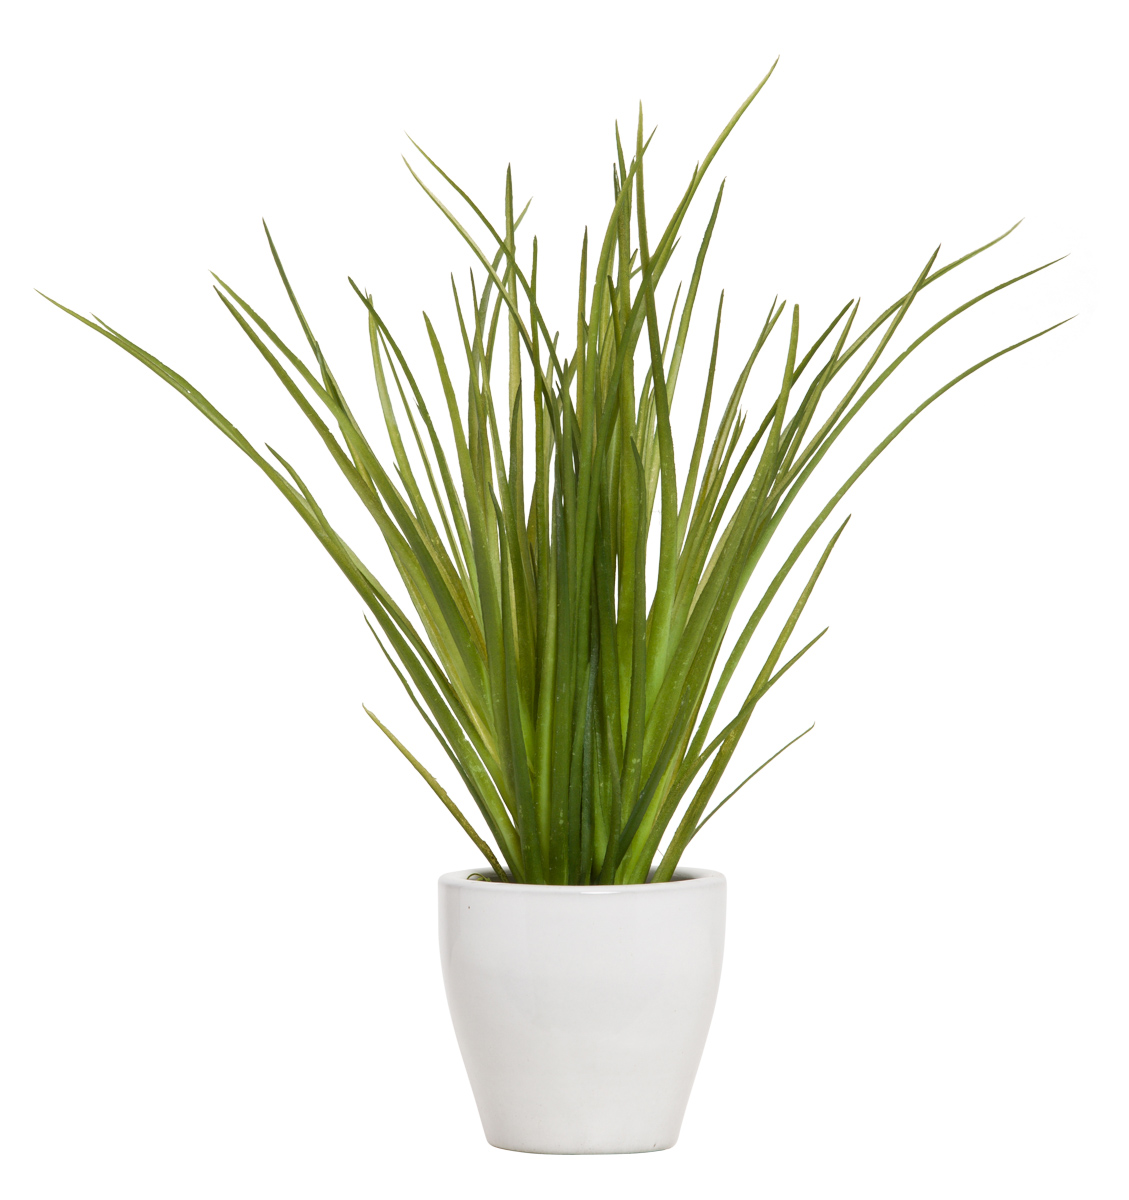 GRASS IN WHITE POT